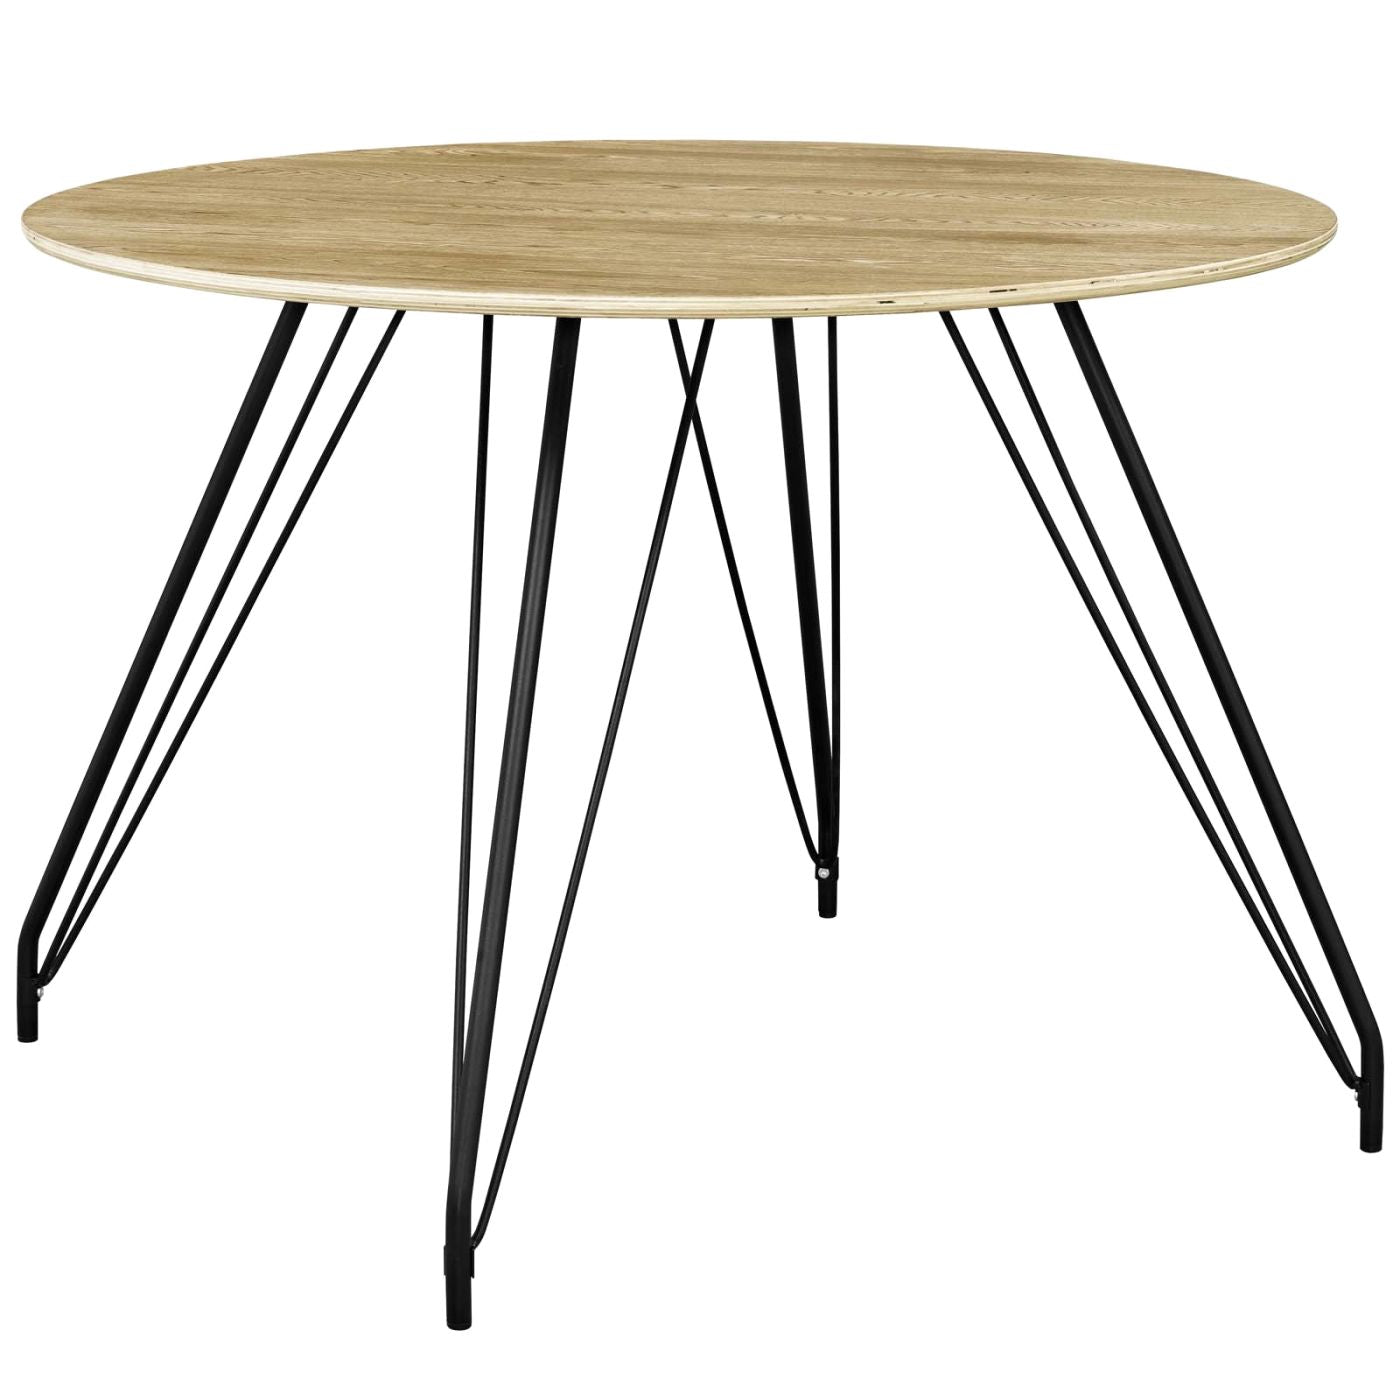 Modway Dining Tables on sale. EEI-2670-NAT-SET Satellite Mid-Century Modern  Round Dining Table only Only $242.05 at Contemporary Furniture Warehouse